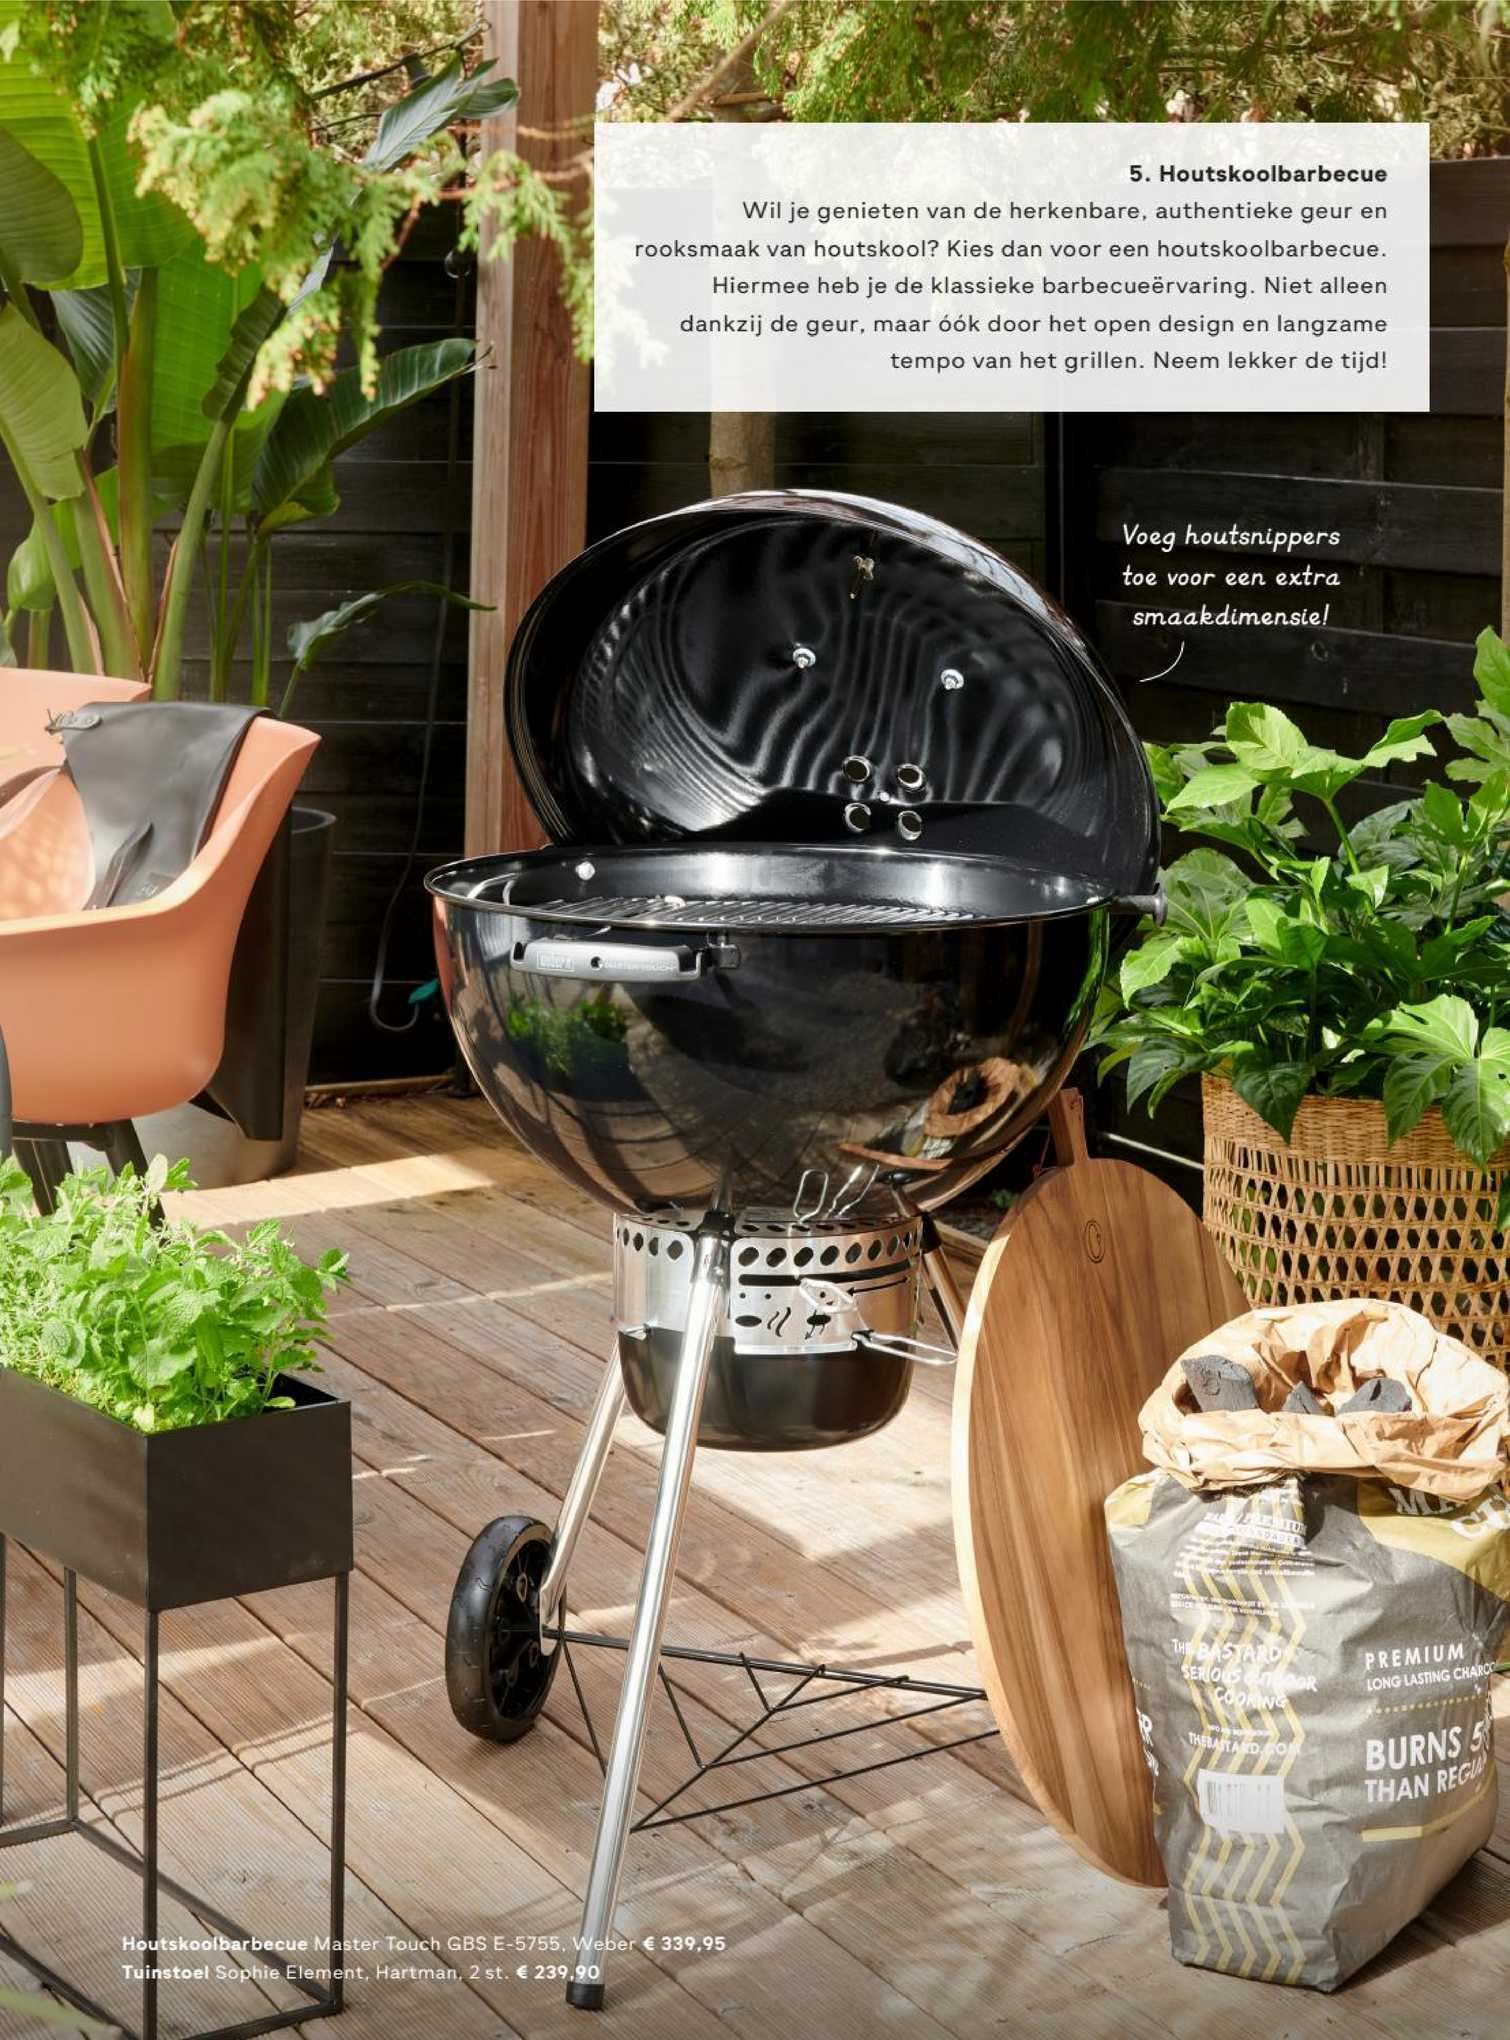 FonQ Houtskoolbarbecue Master Touch GBS E-5755, Weber Of Tuinstoel Sophie Element, Hartman 2 St.